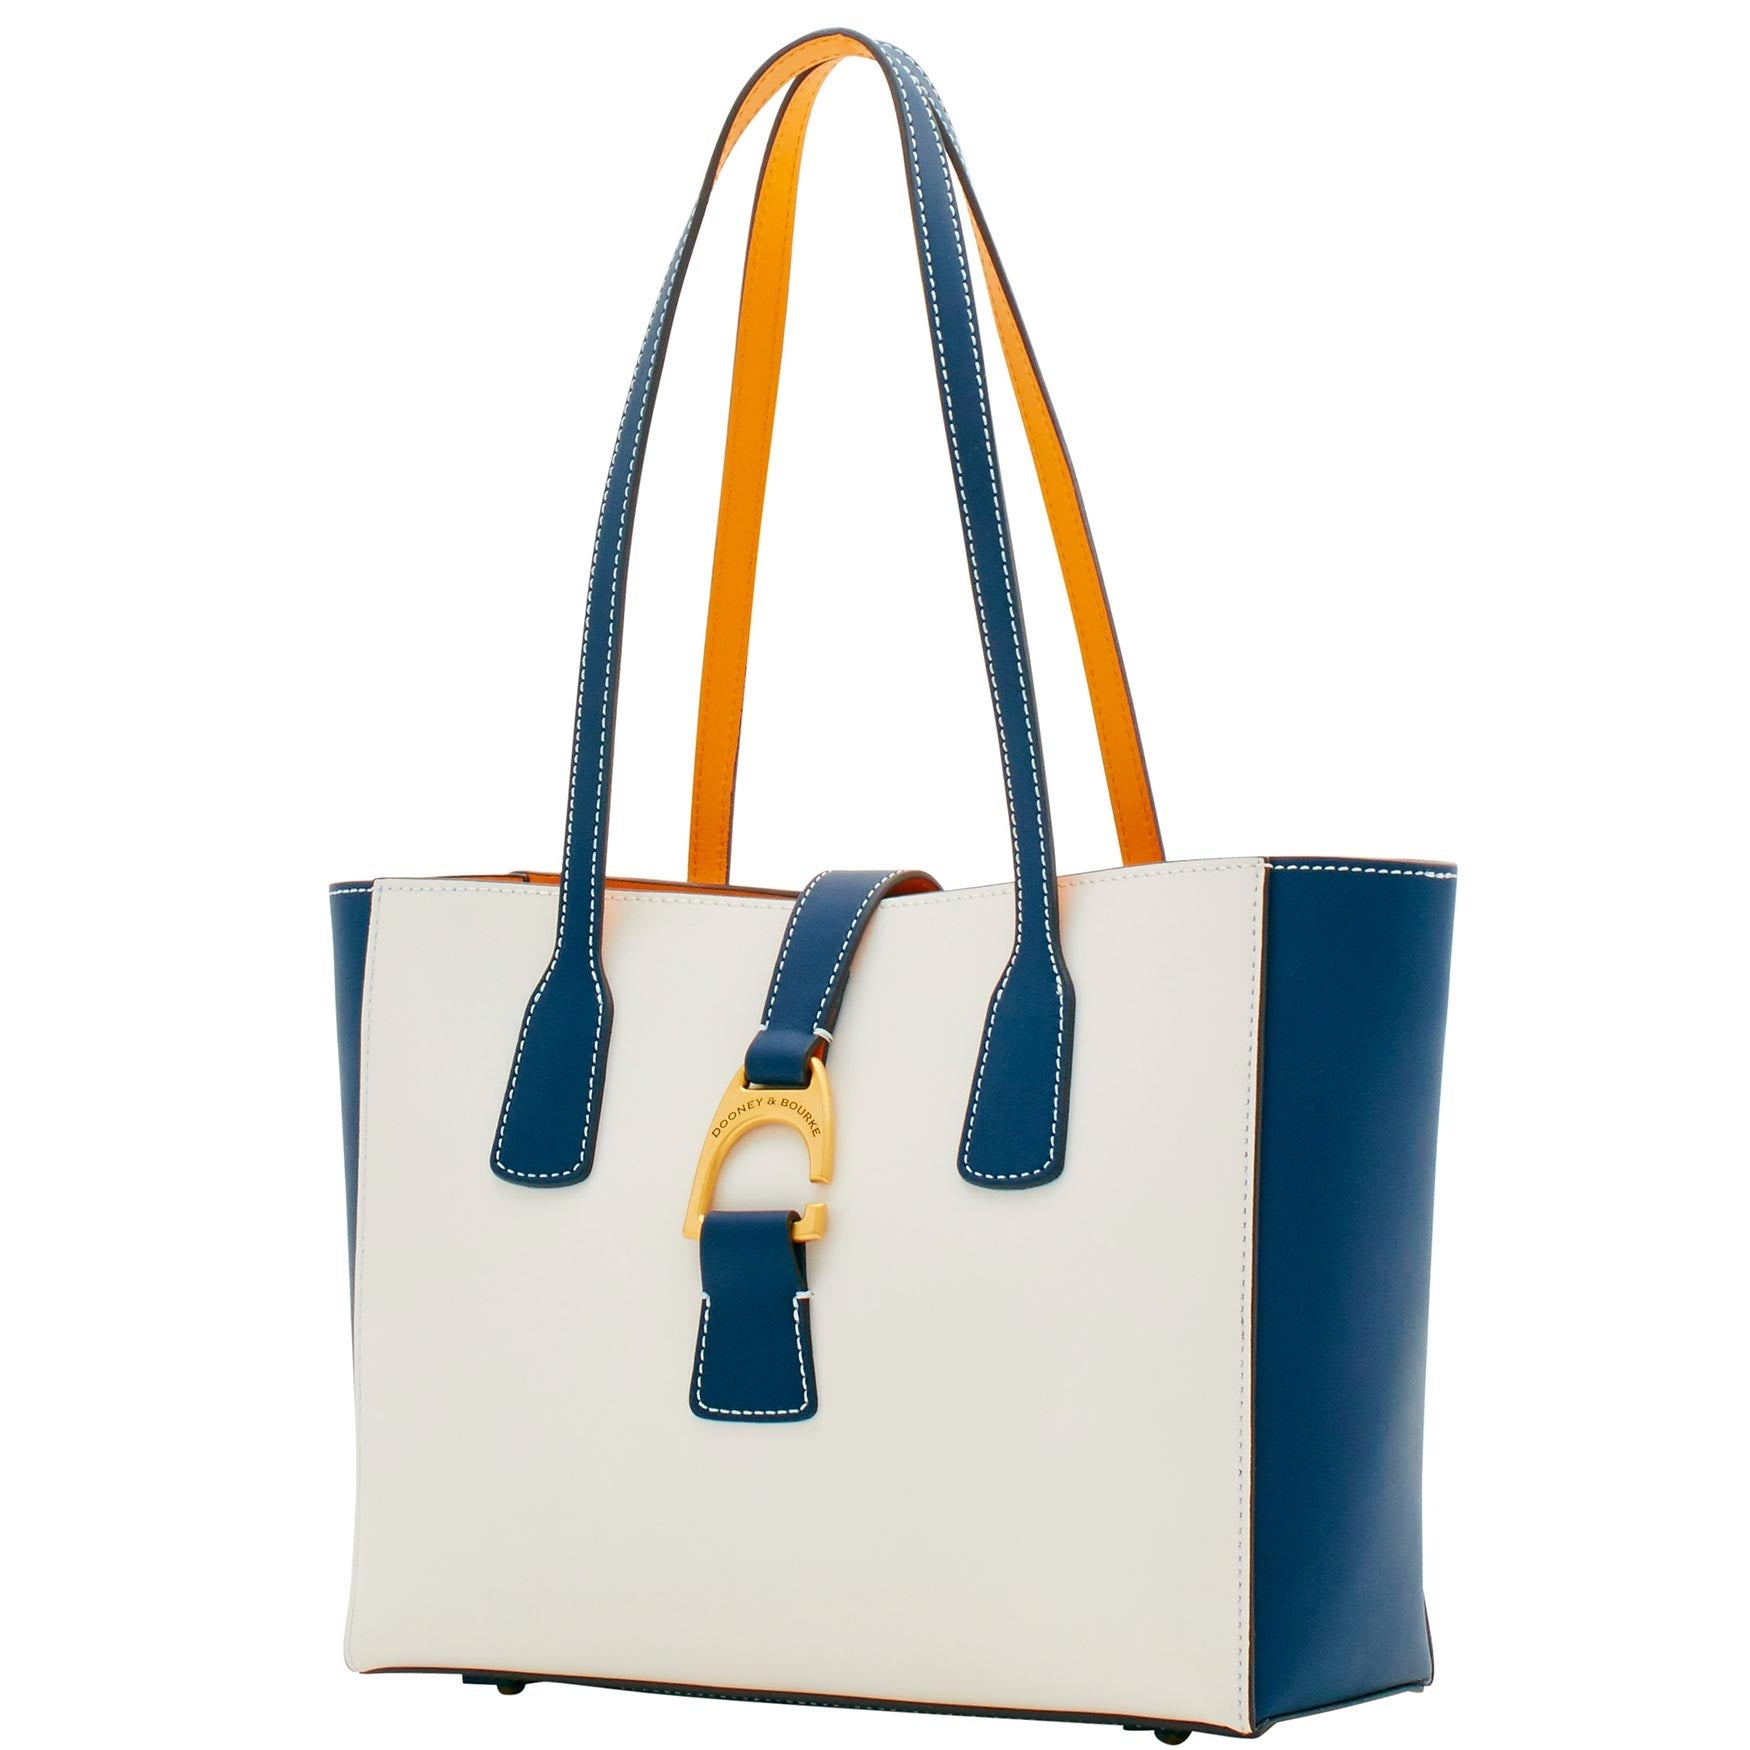 f4d45e6ee091 Shop Dooney   Bourke Emerson Small Shannon Tote (Introduced by Dooney    Bourke at  298 in Jan 2018) - Free Shipping Today - Overstock - 21936009